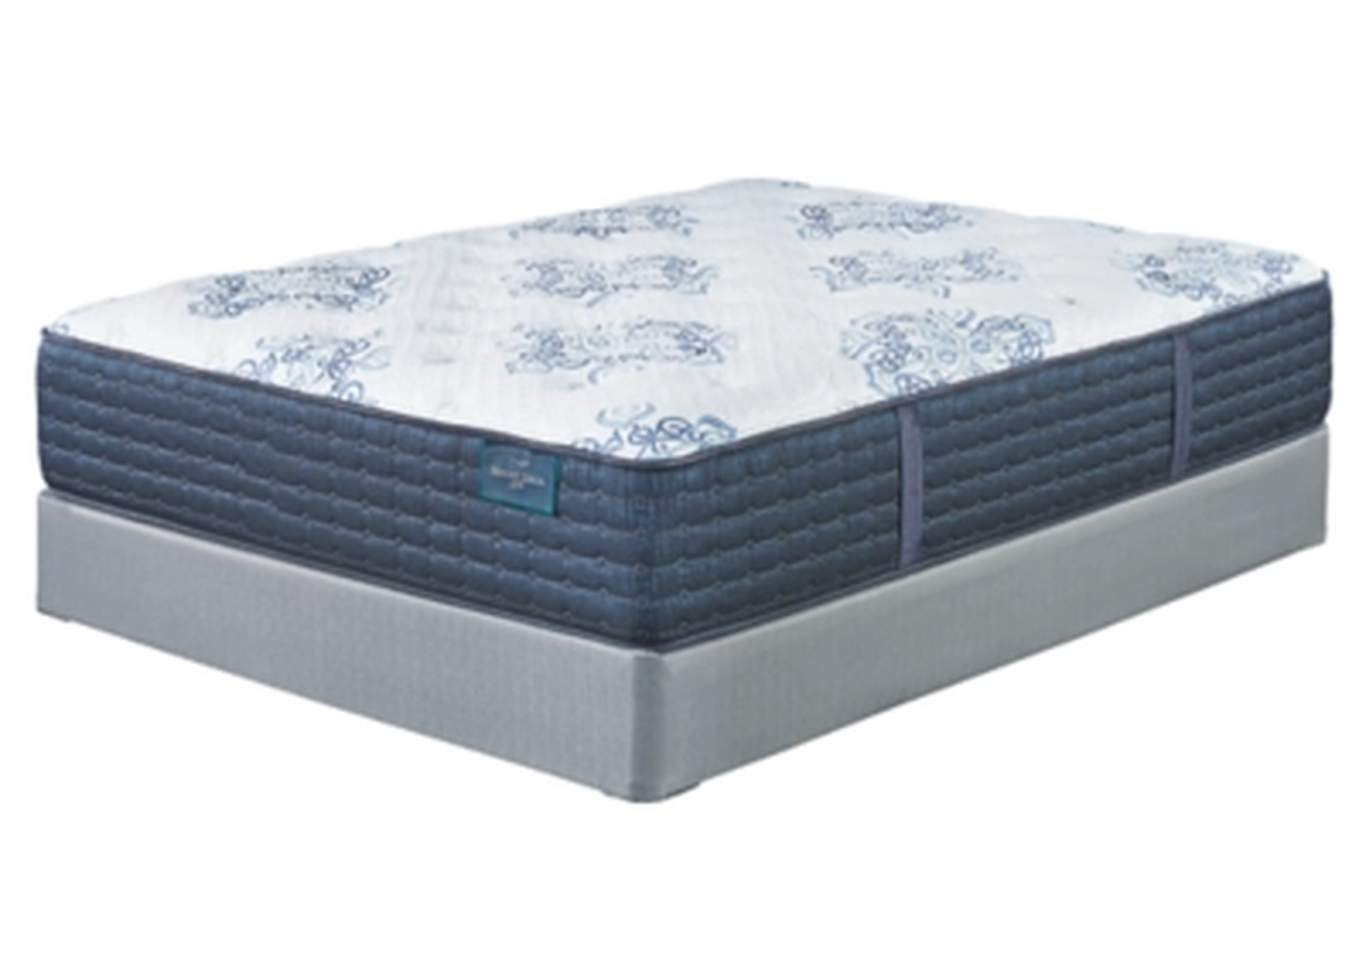 Mt. Dana Firm White King Mattress,Sierra Sleep